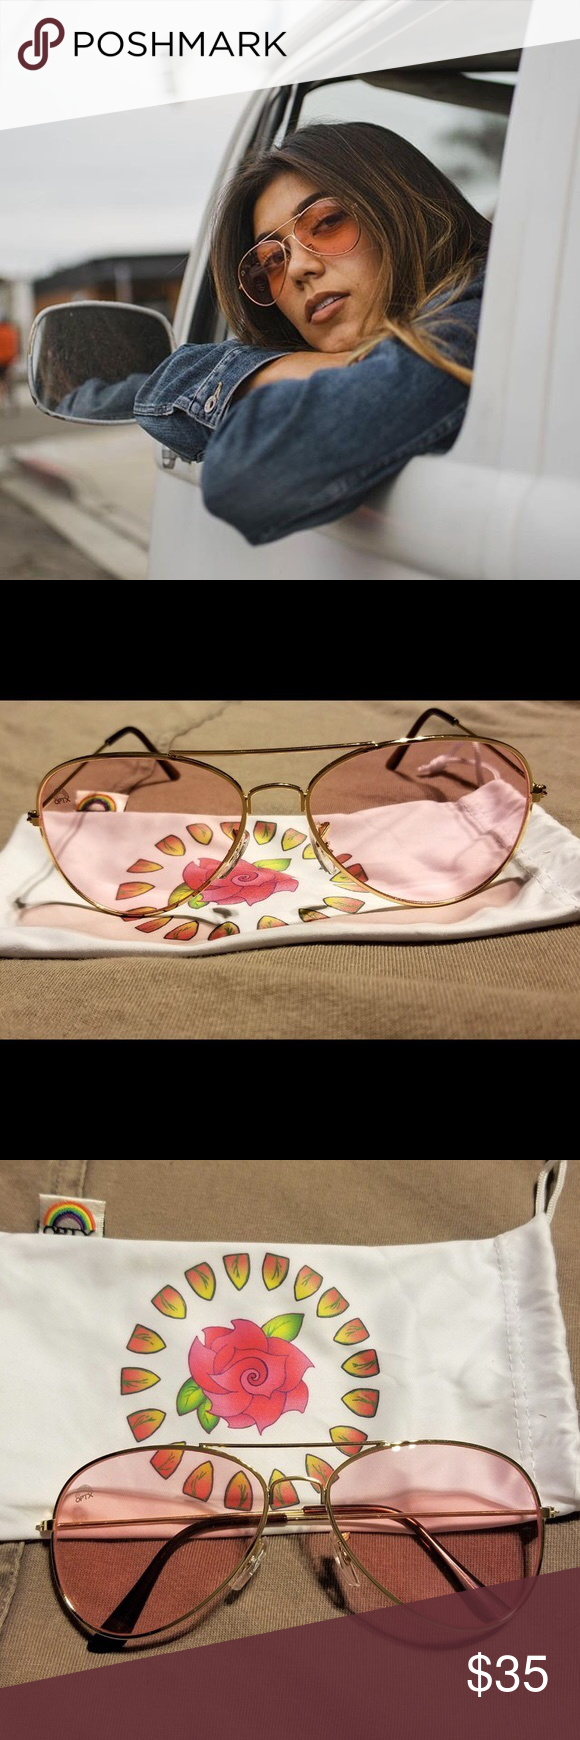 76f5b9b0c71 Rainbow OPTX Rose Aviator Sunglasses New  amp  unused! I am obsessed with Rainbow  Optx s